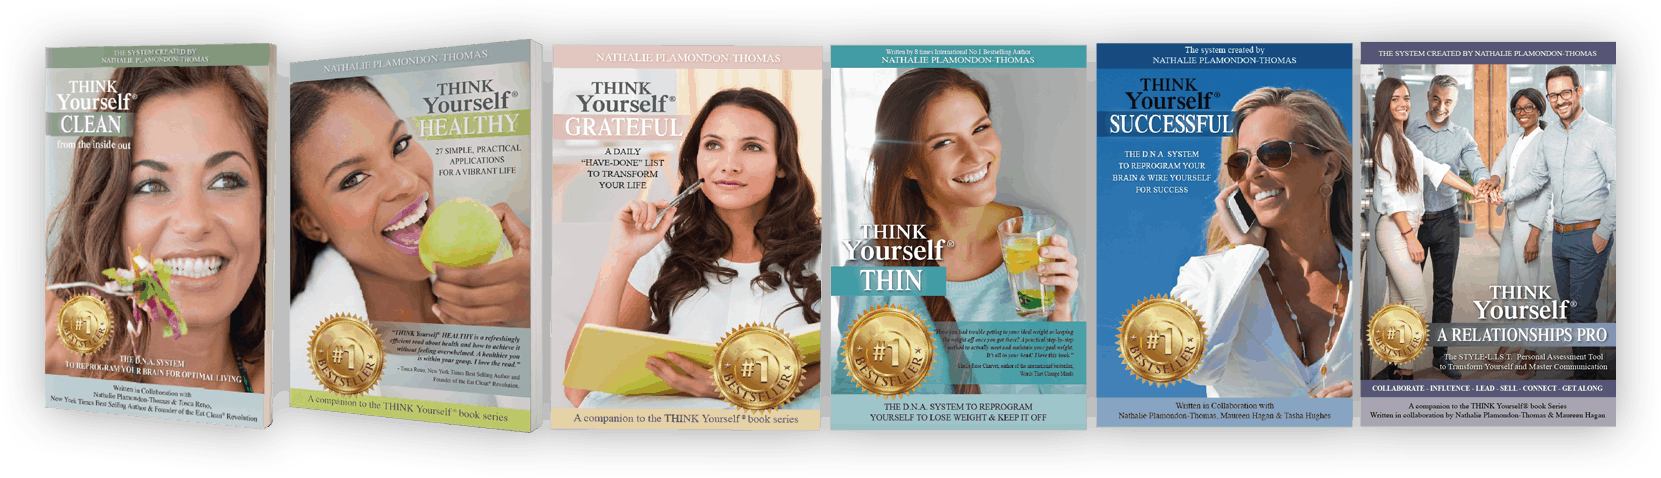 THINK Yourself International Best-Selling Books